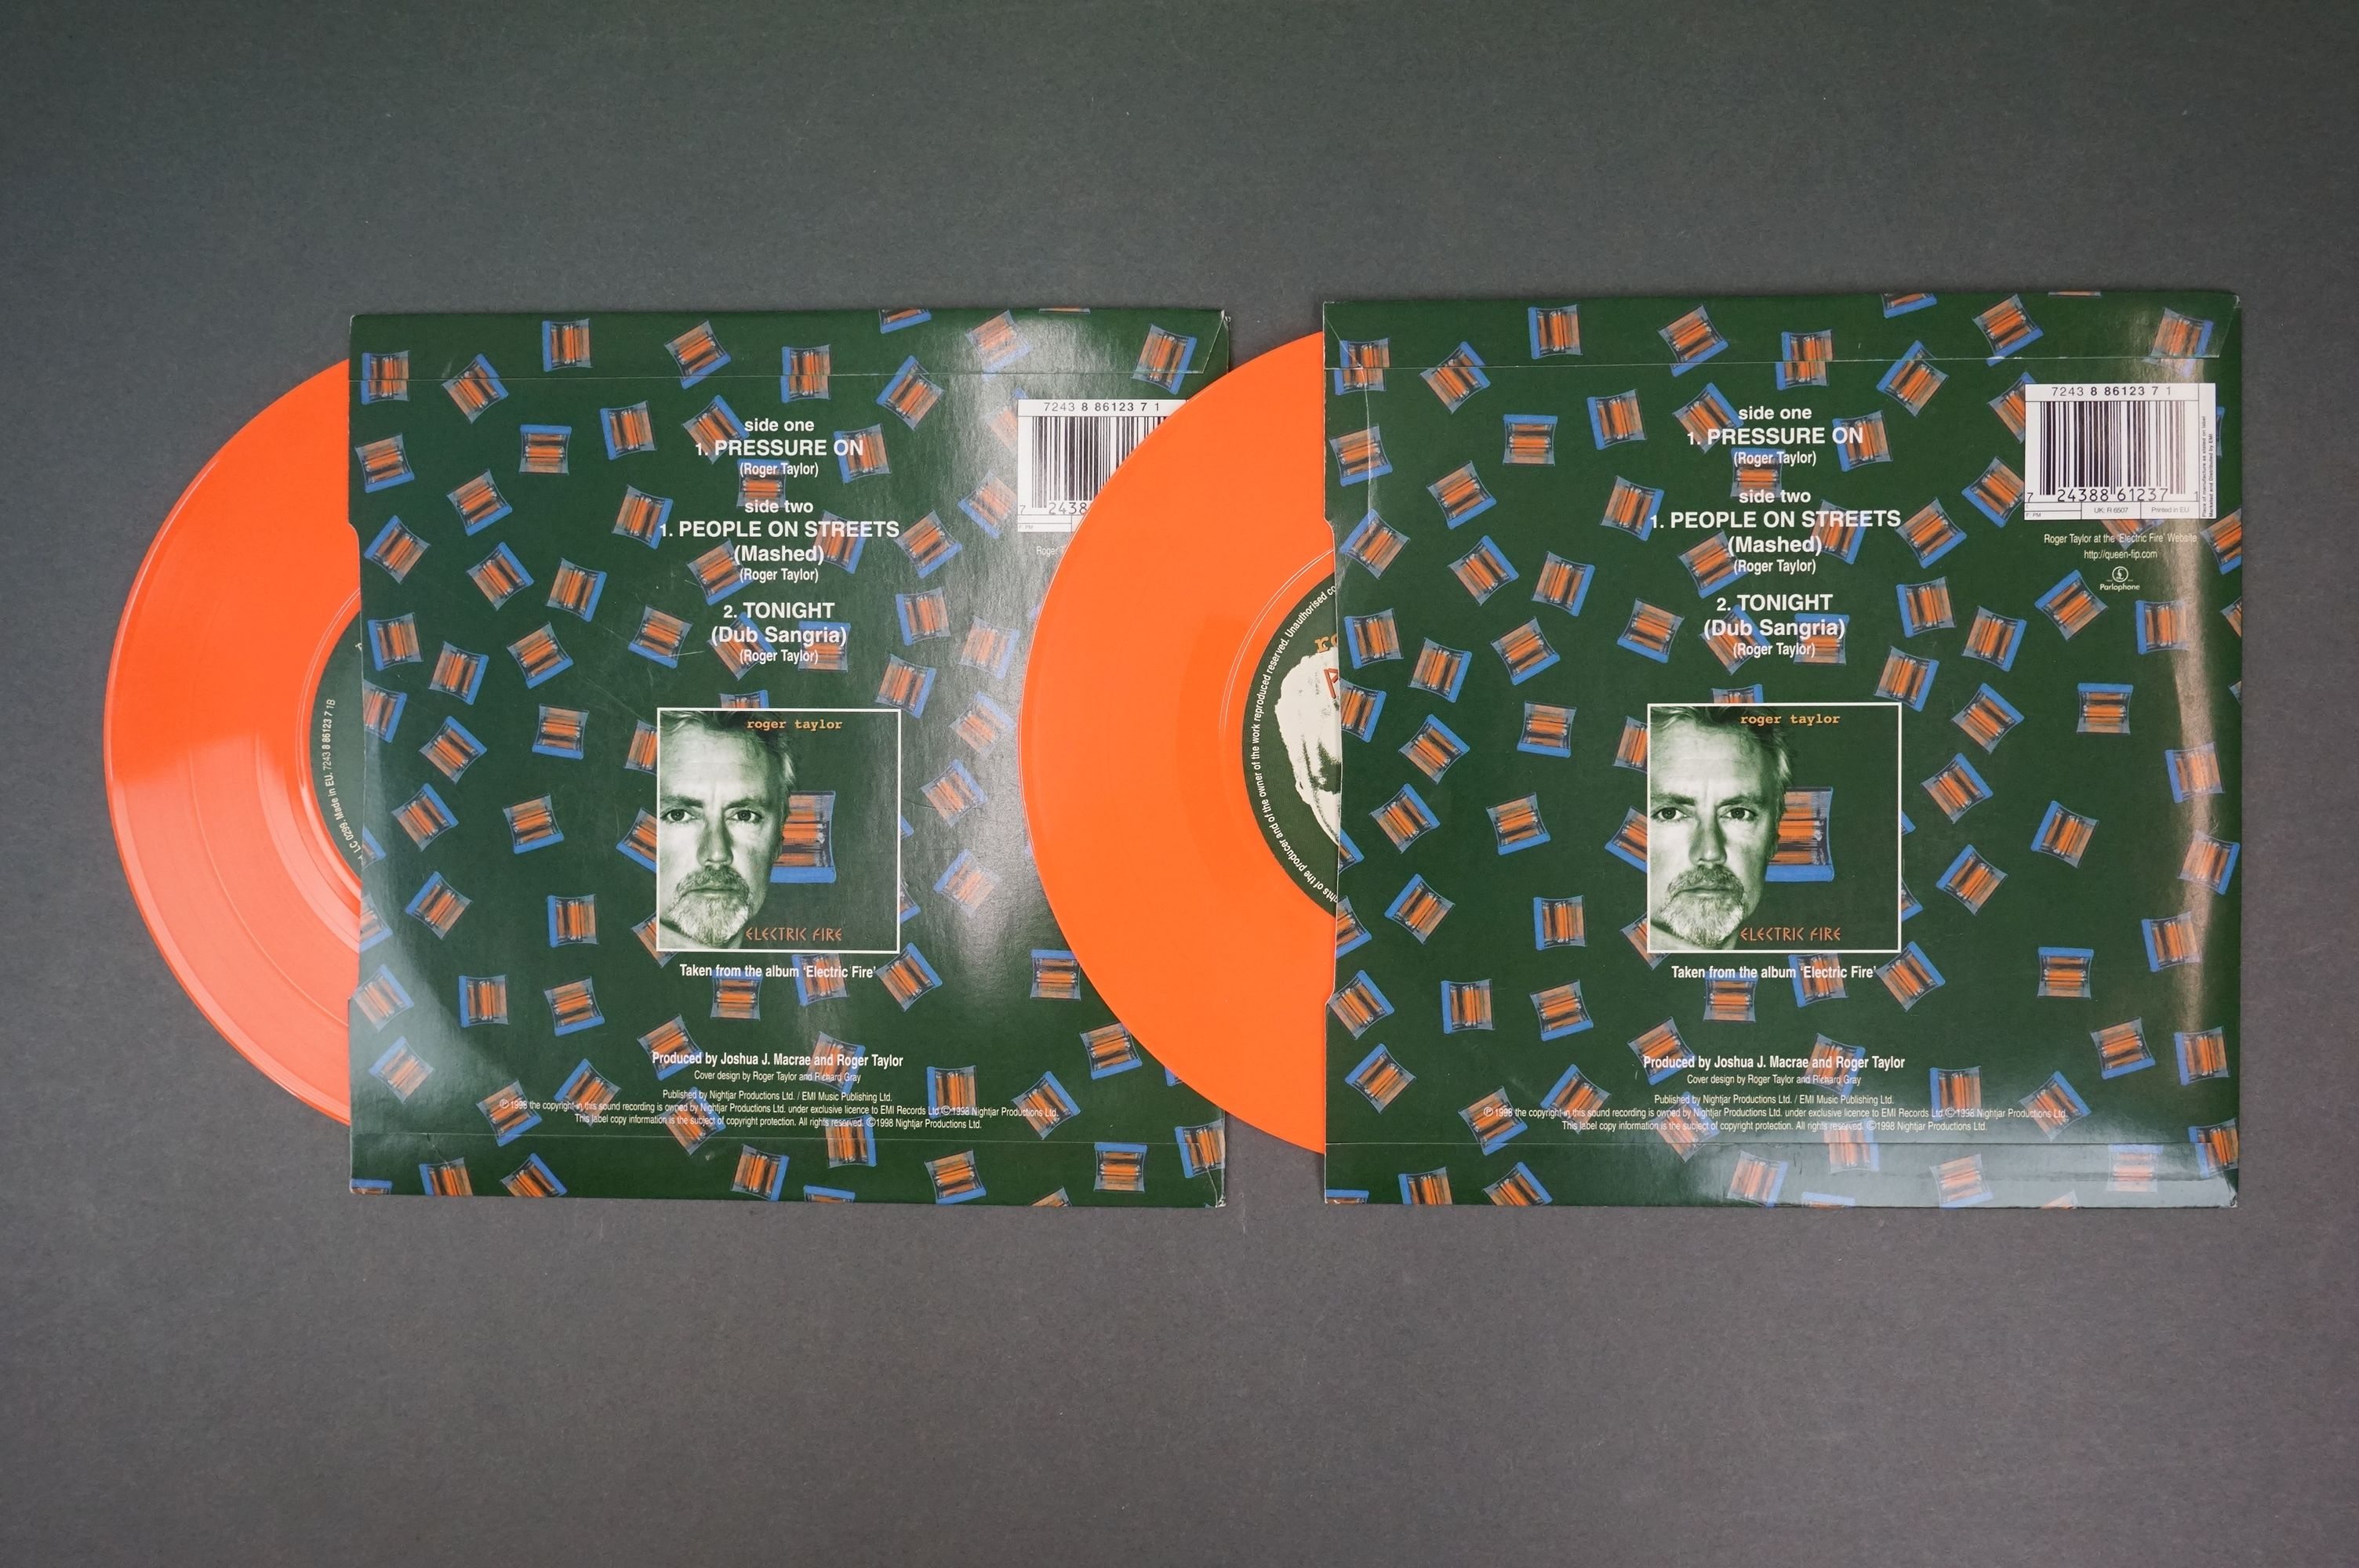 Vinyl - Queen & related collection of 7 inch singles including 12 x No One But You Ltd Edn picture - Image 3 of 11